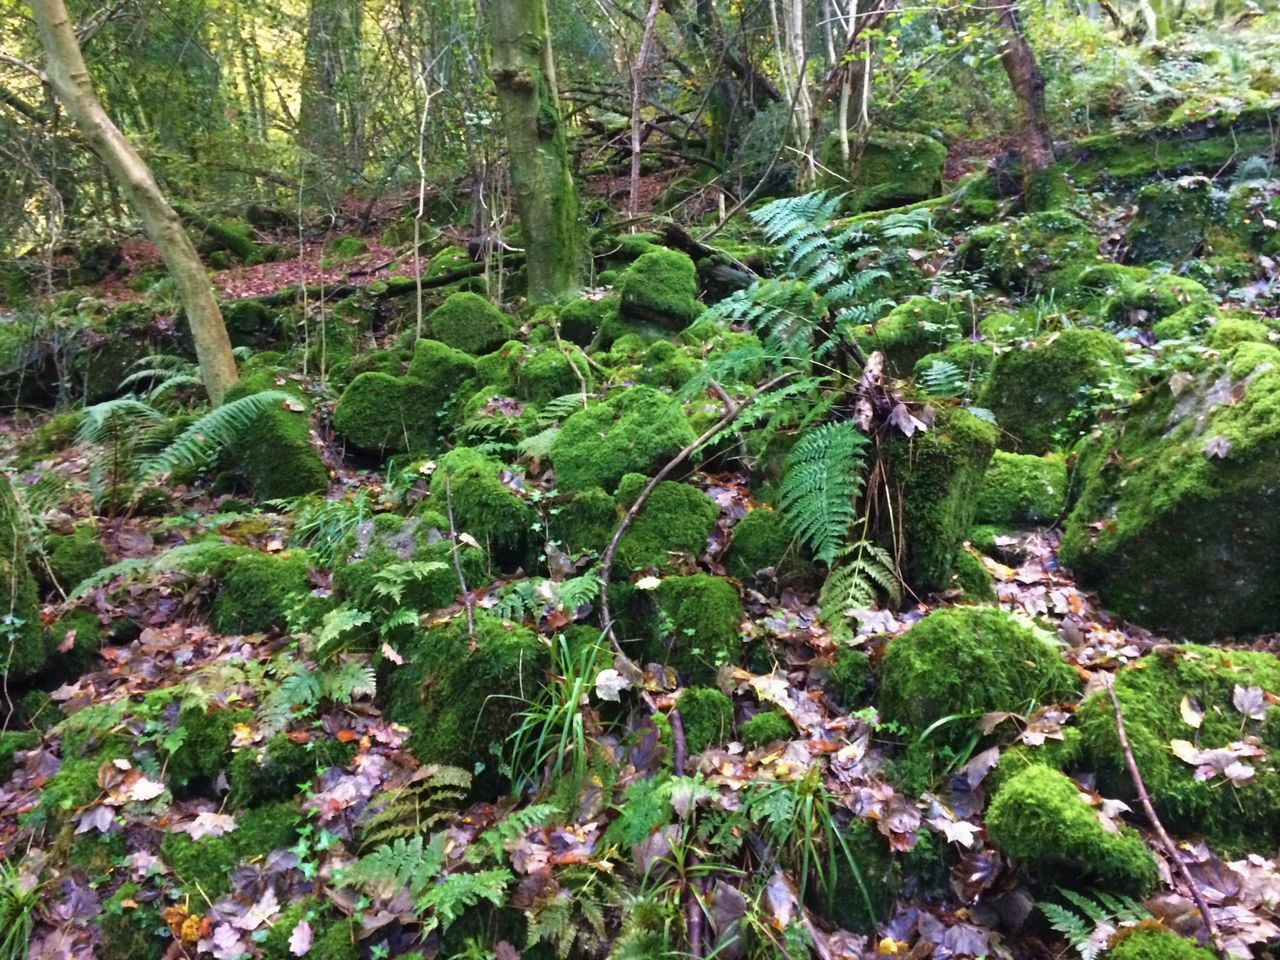 Forest Green Color Growth Moss Nature No People Outdoors Plant Scenics Stones Tranquility Tree